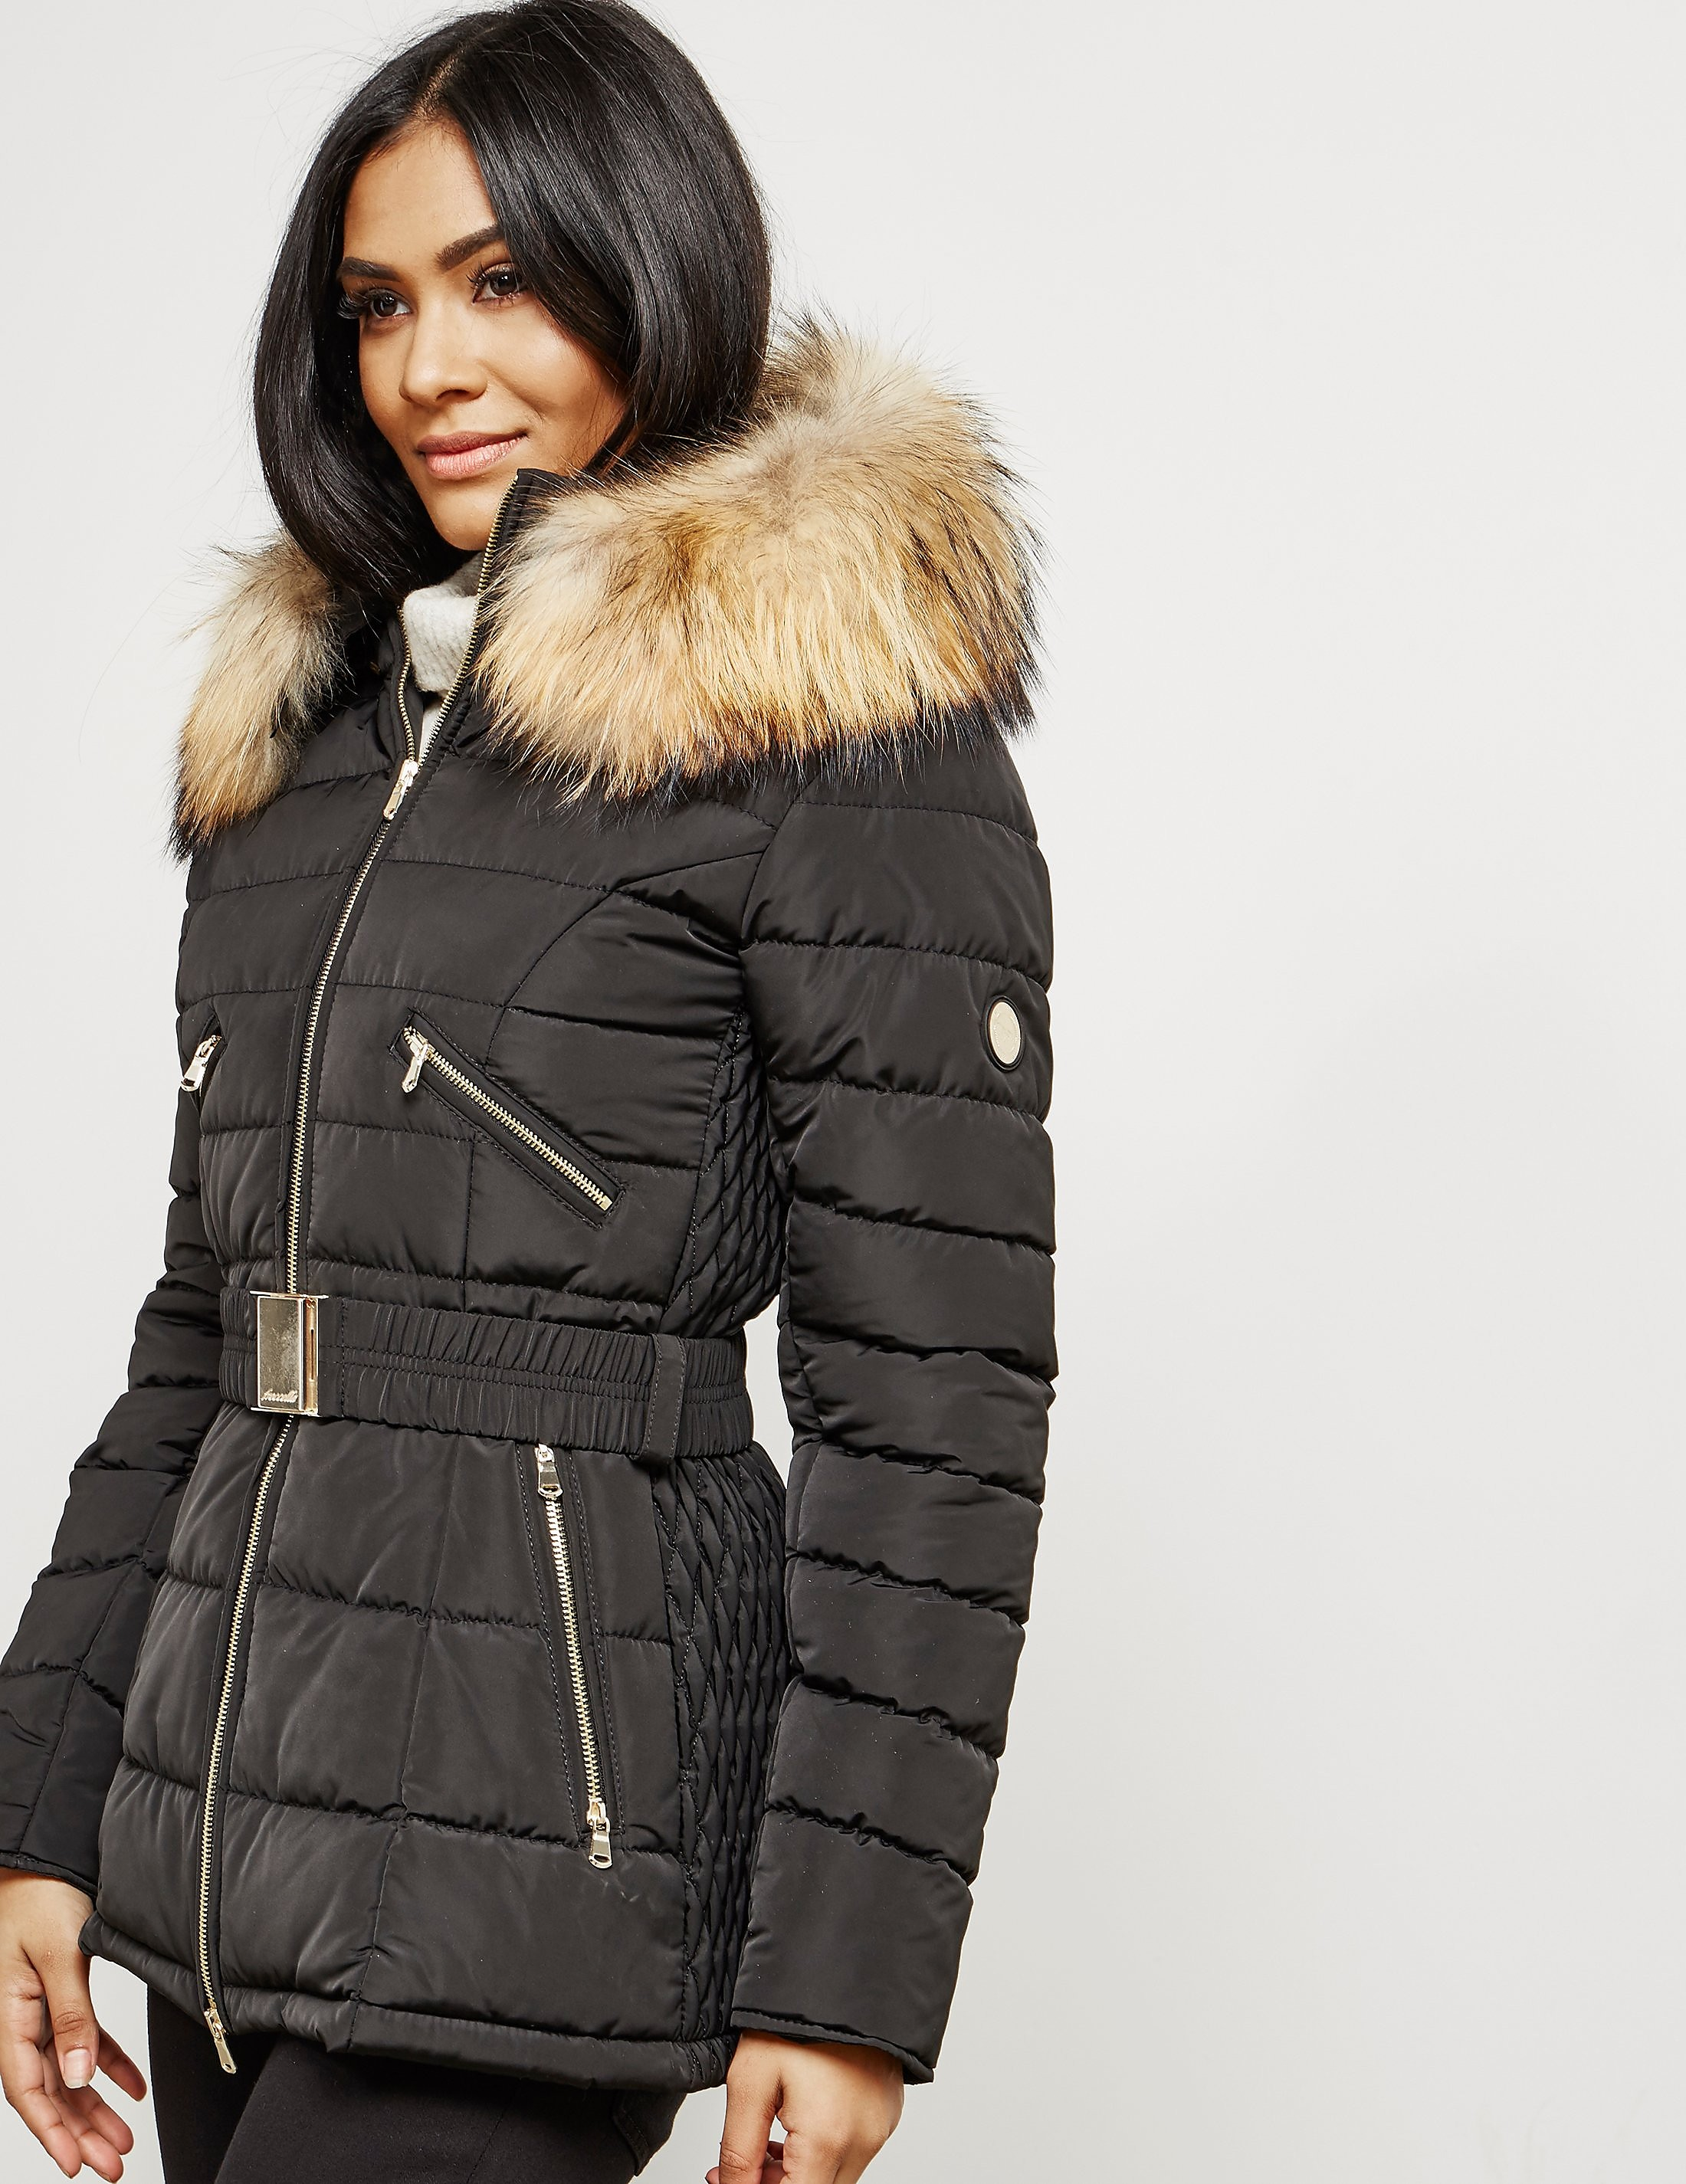 Froccella Padded Belt Jacket